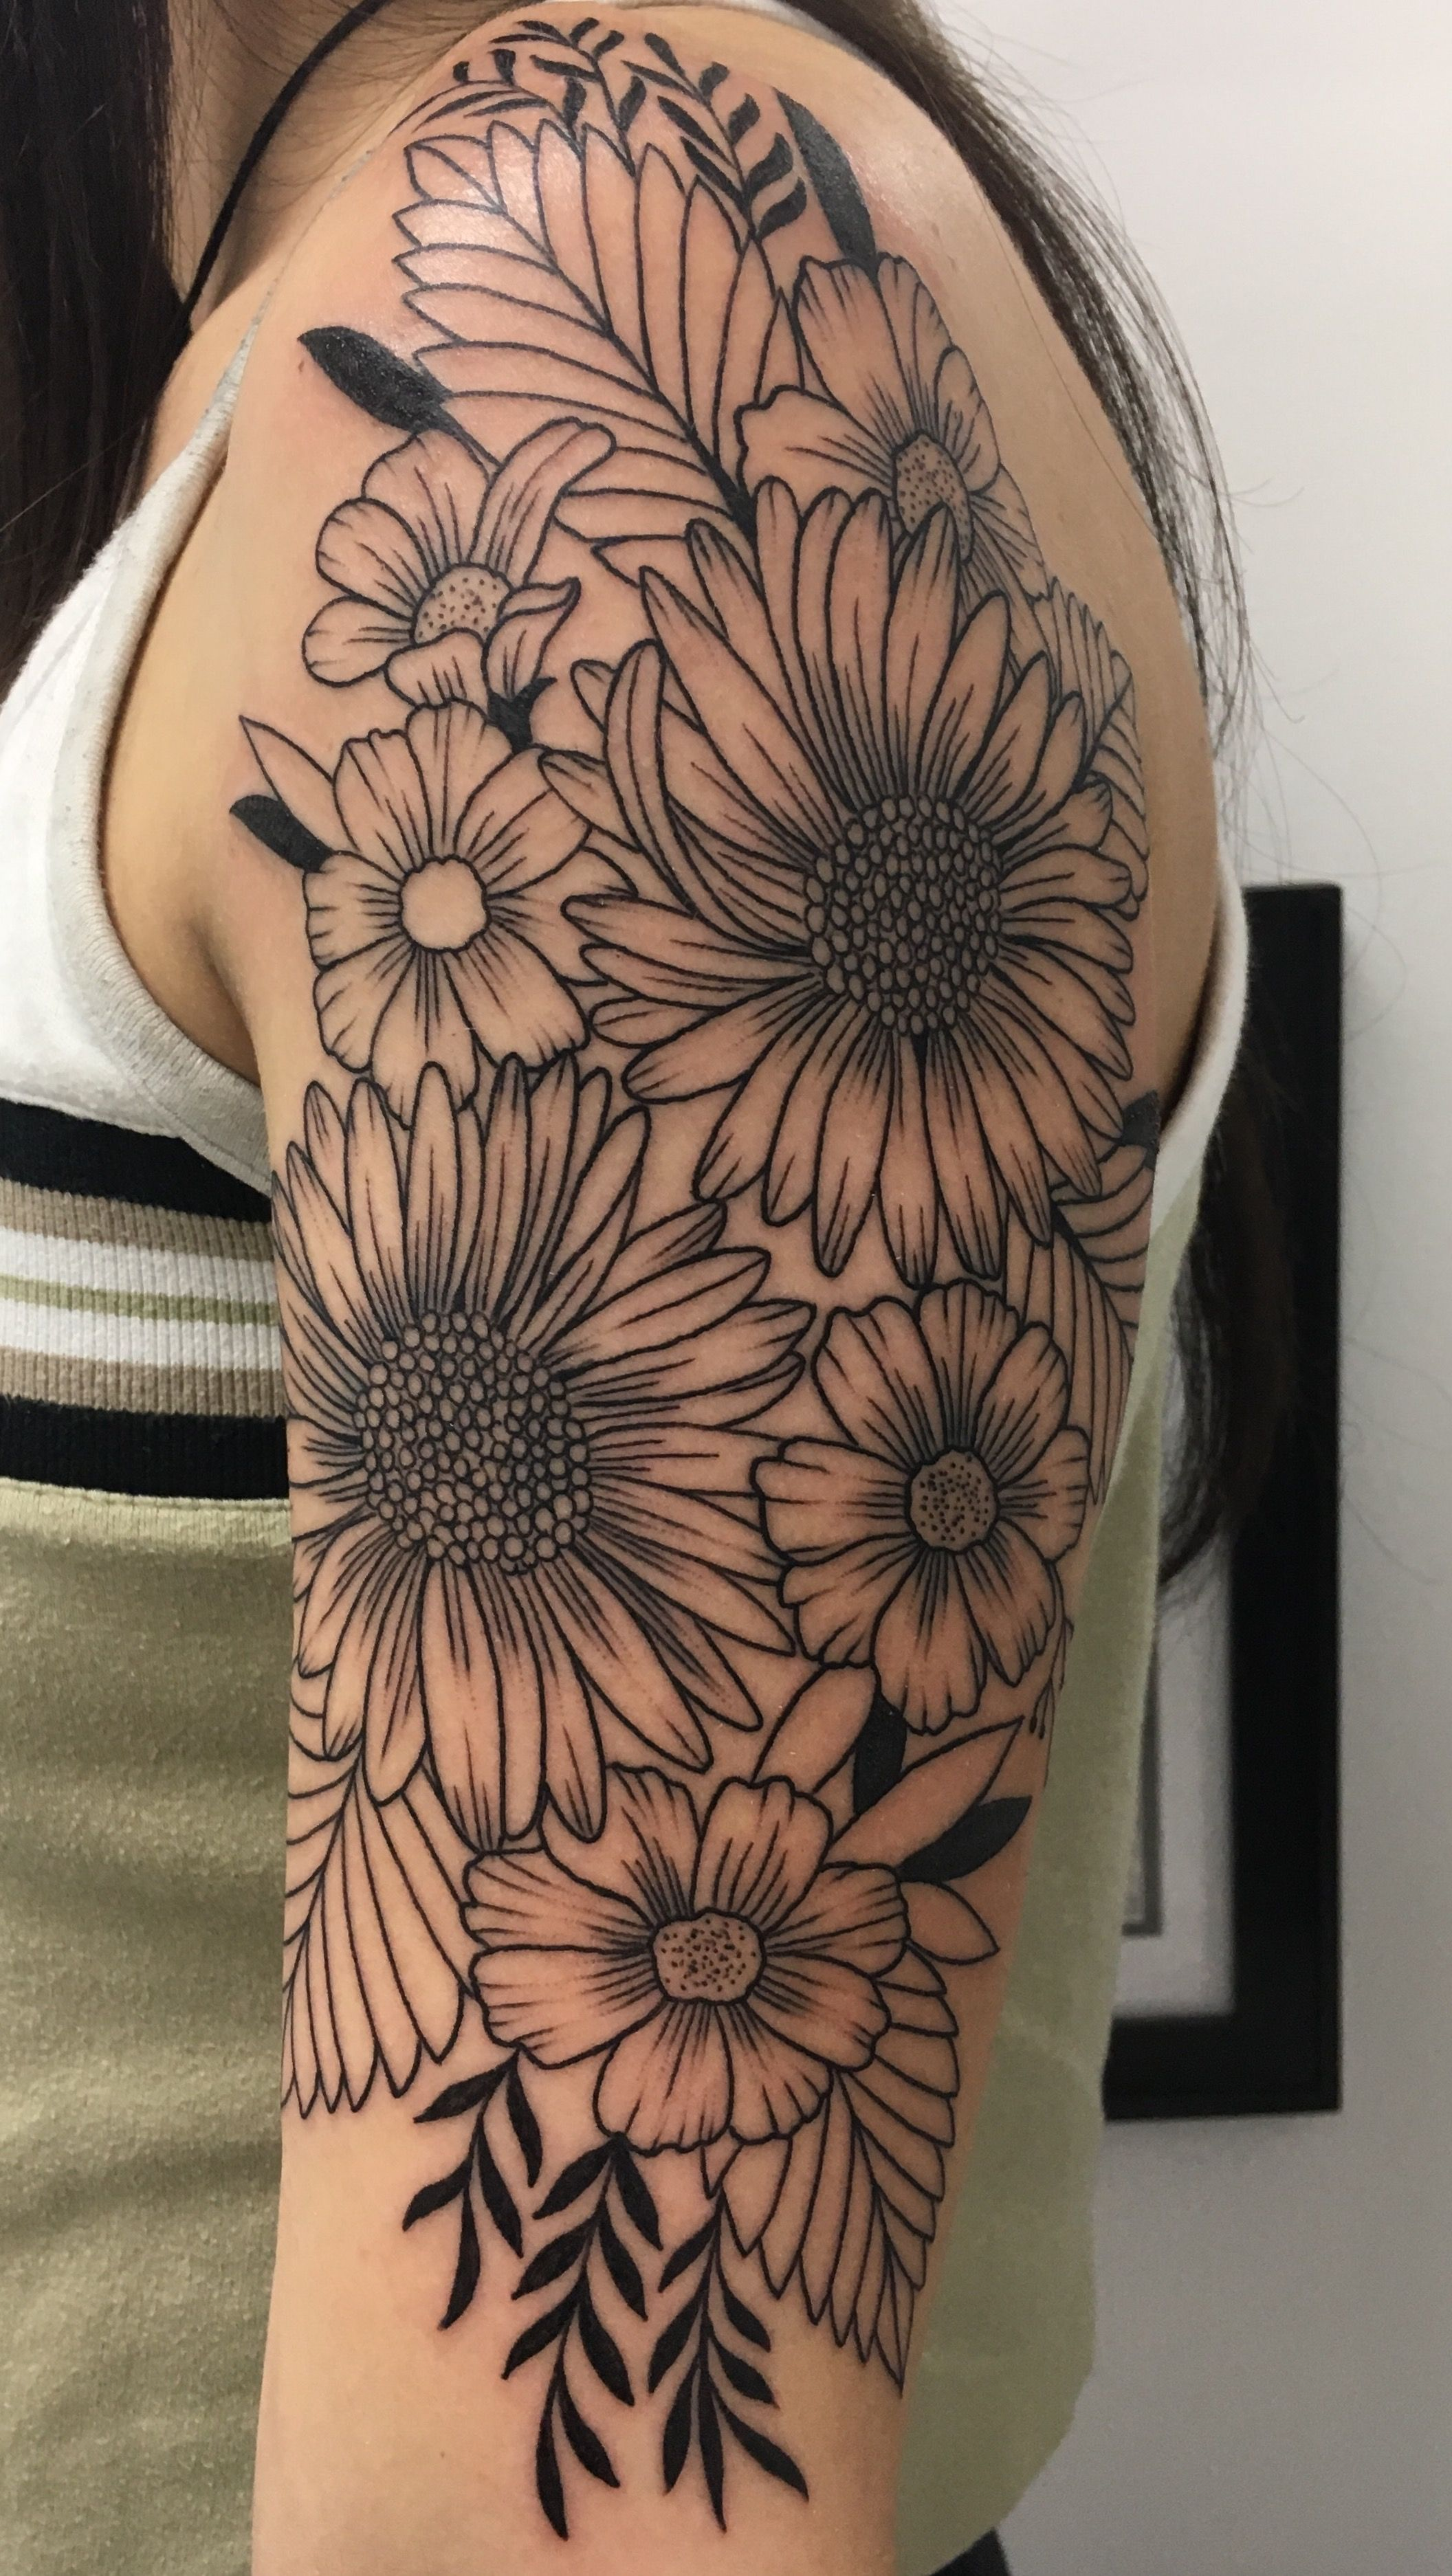 Number 4 Half Sleeve Wildflower Tattoo Took About 3 12 Hours